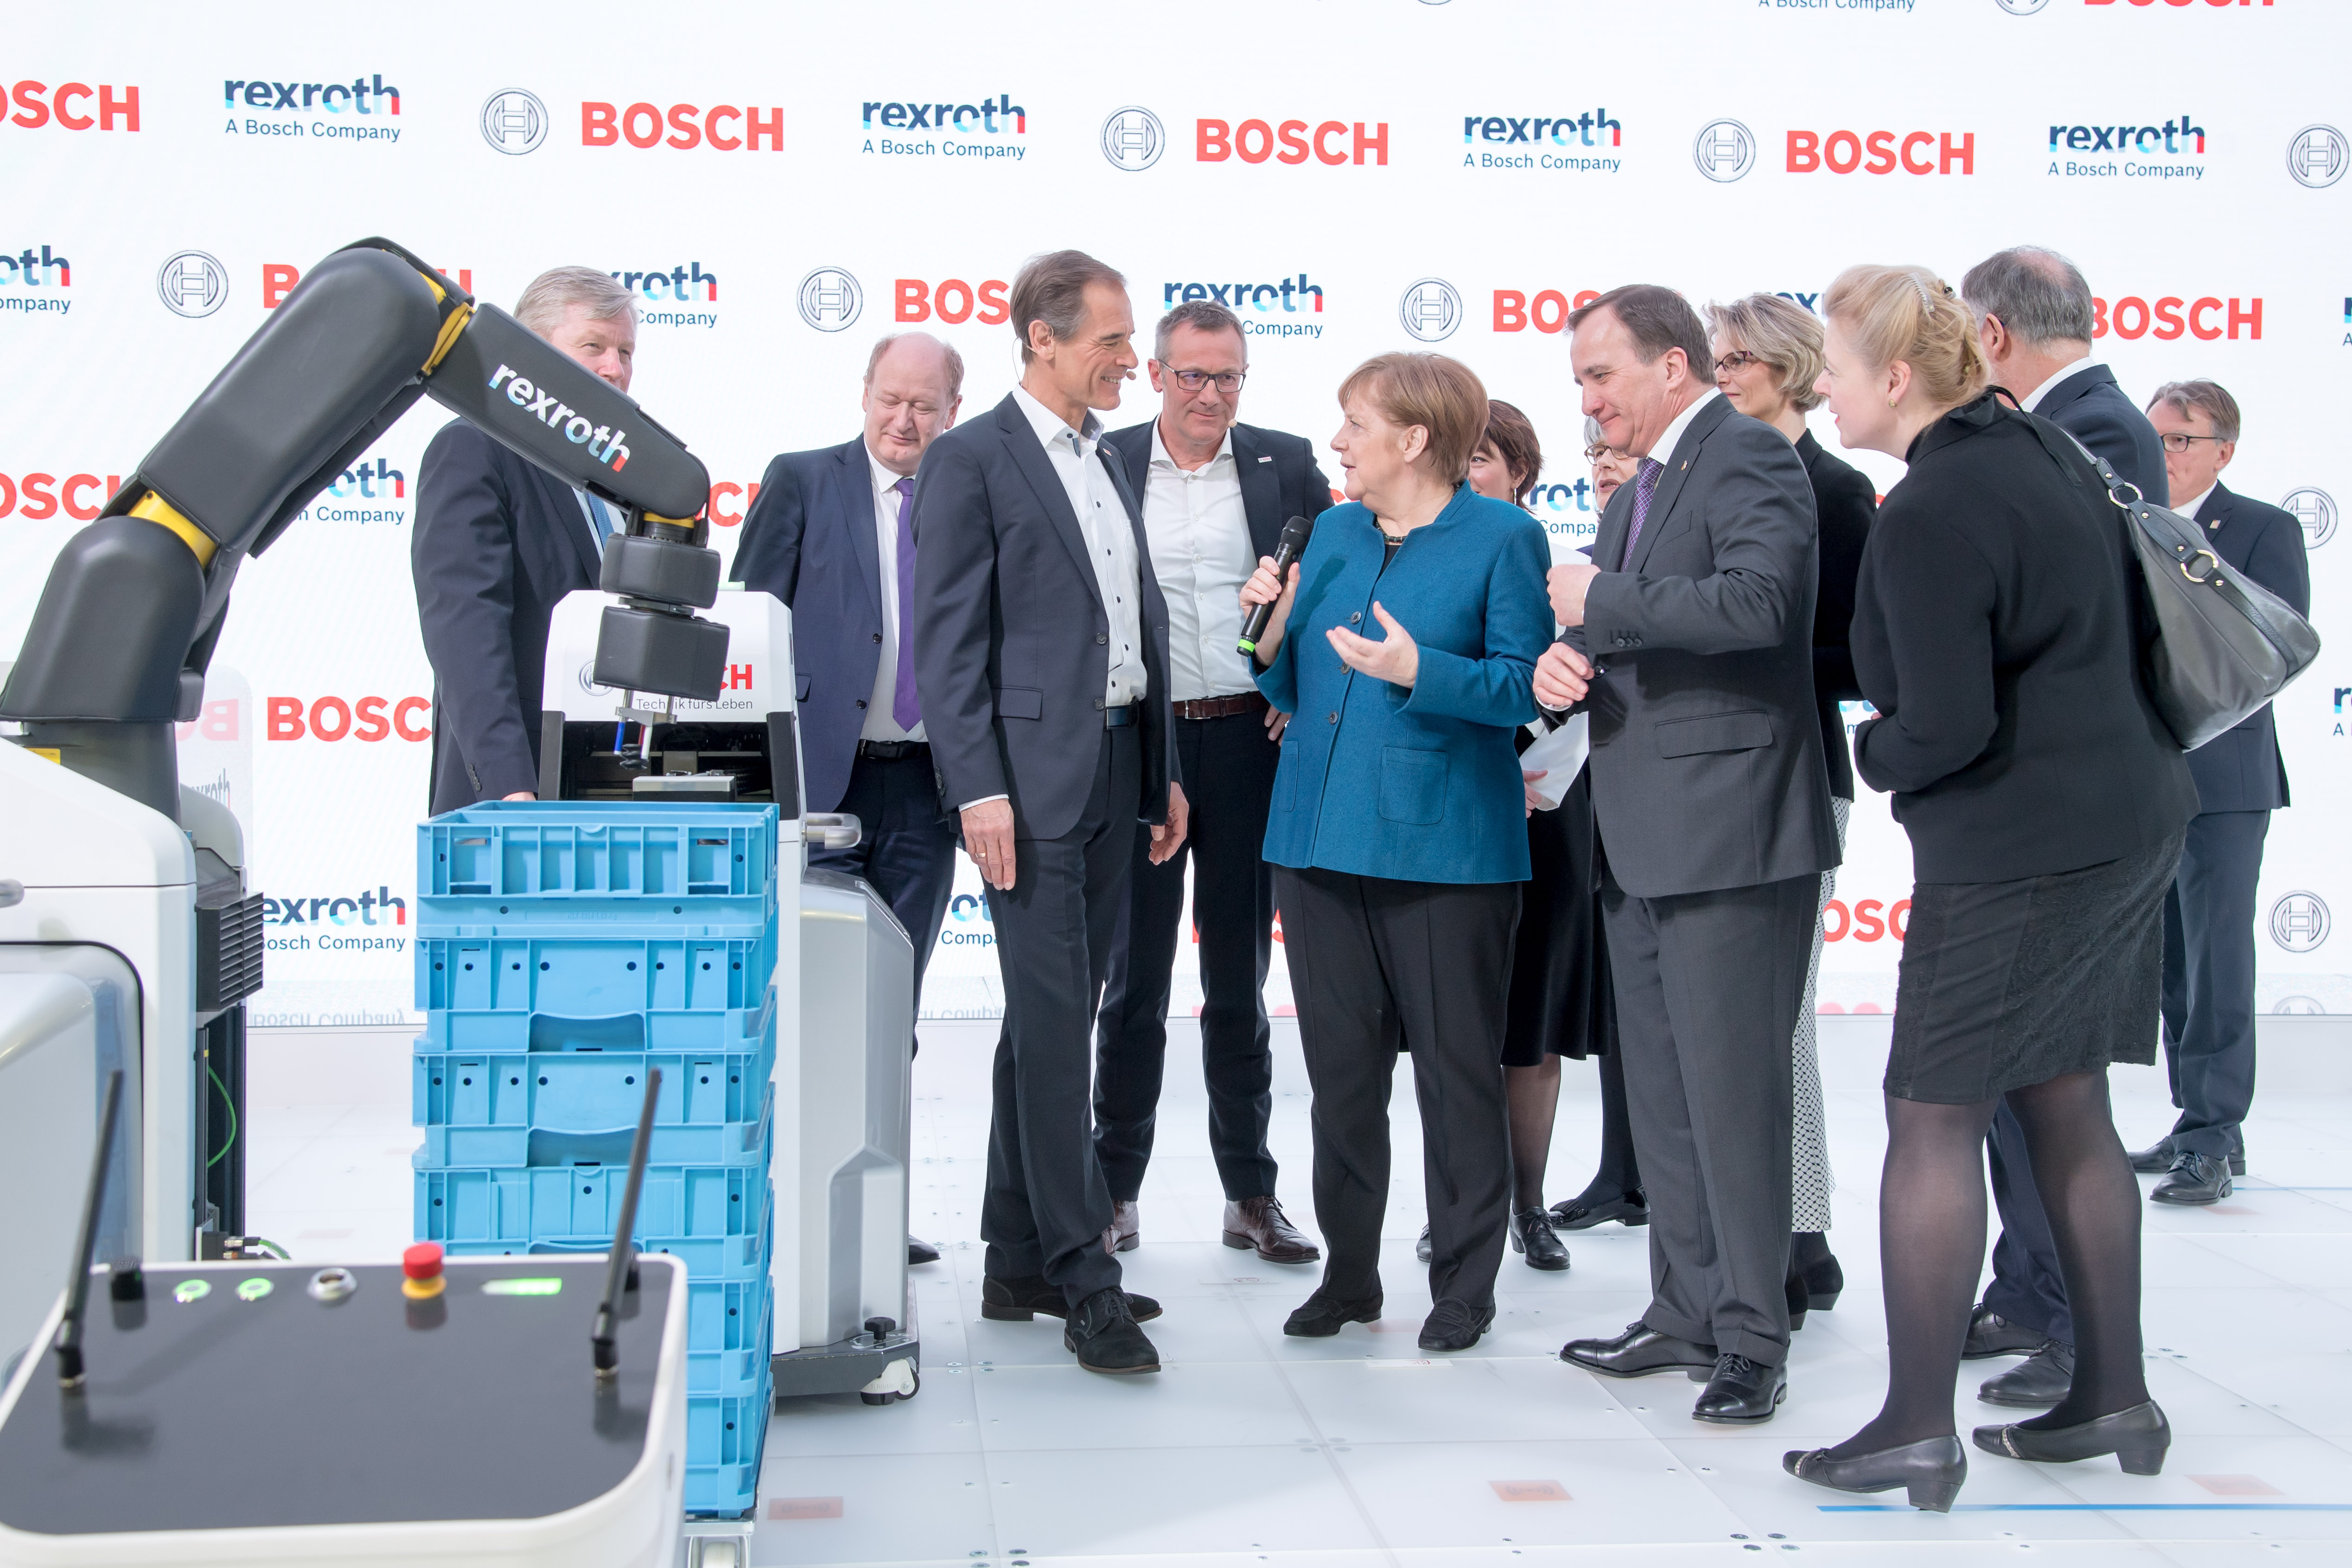 Chancellor Angela Merkel and the swedish prime minister Stefan Löfven visit the Bosch booth at the Hannover Messe 2019. The focus is on autonomous transport systems and intelligent robotics